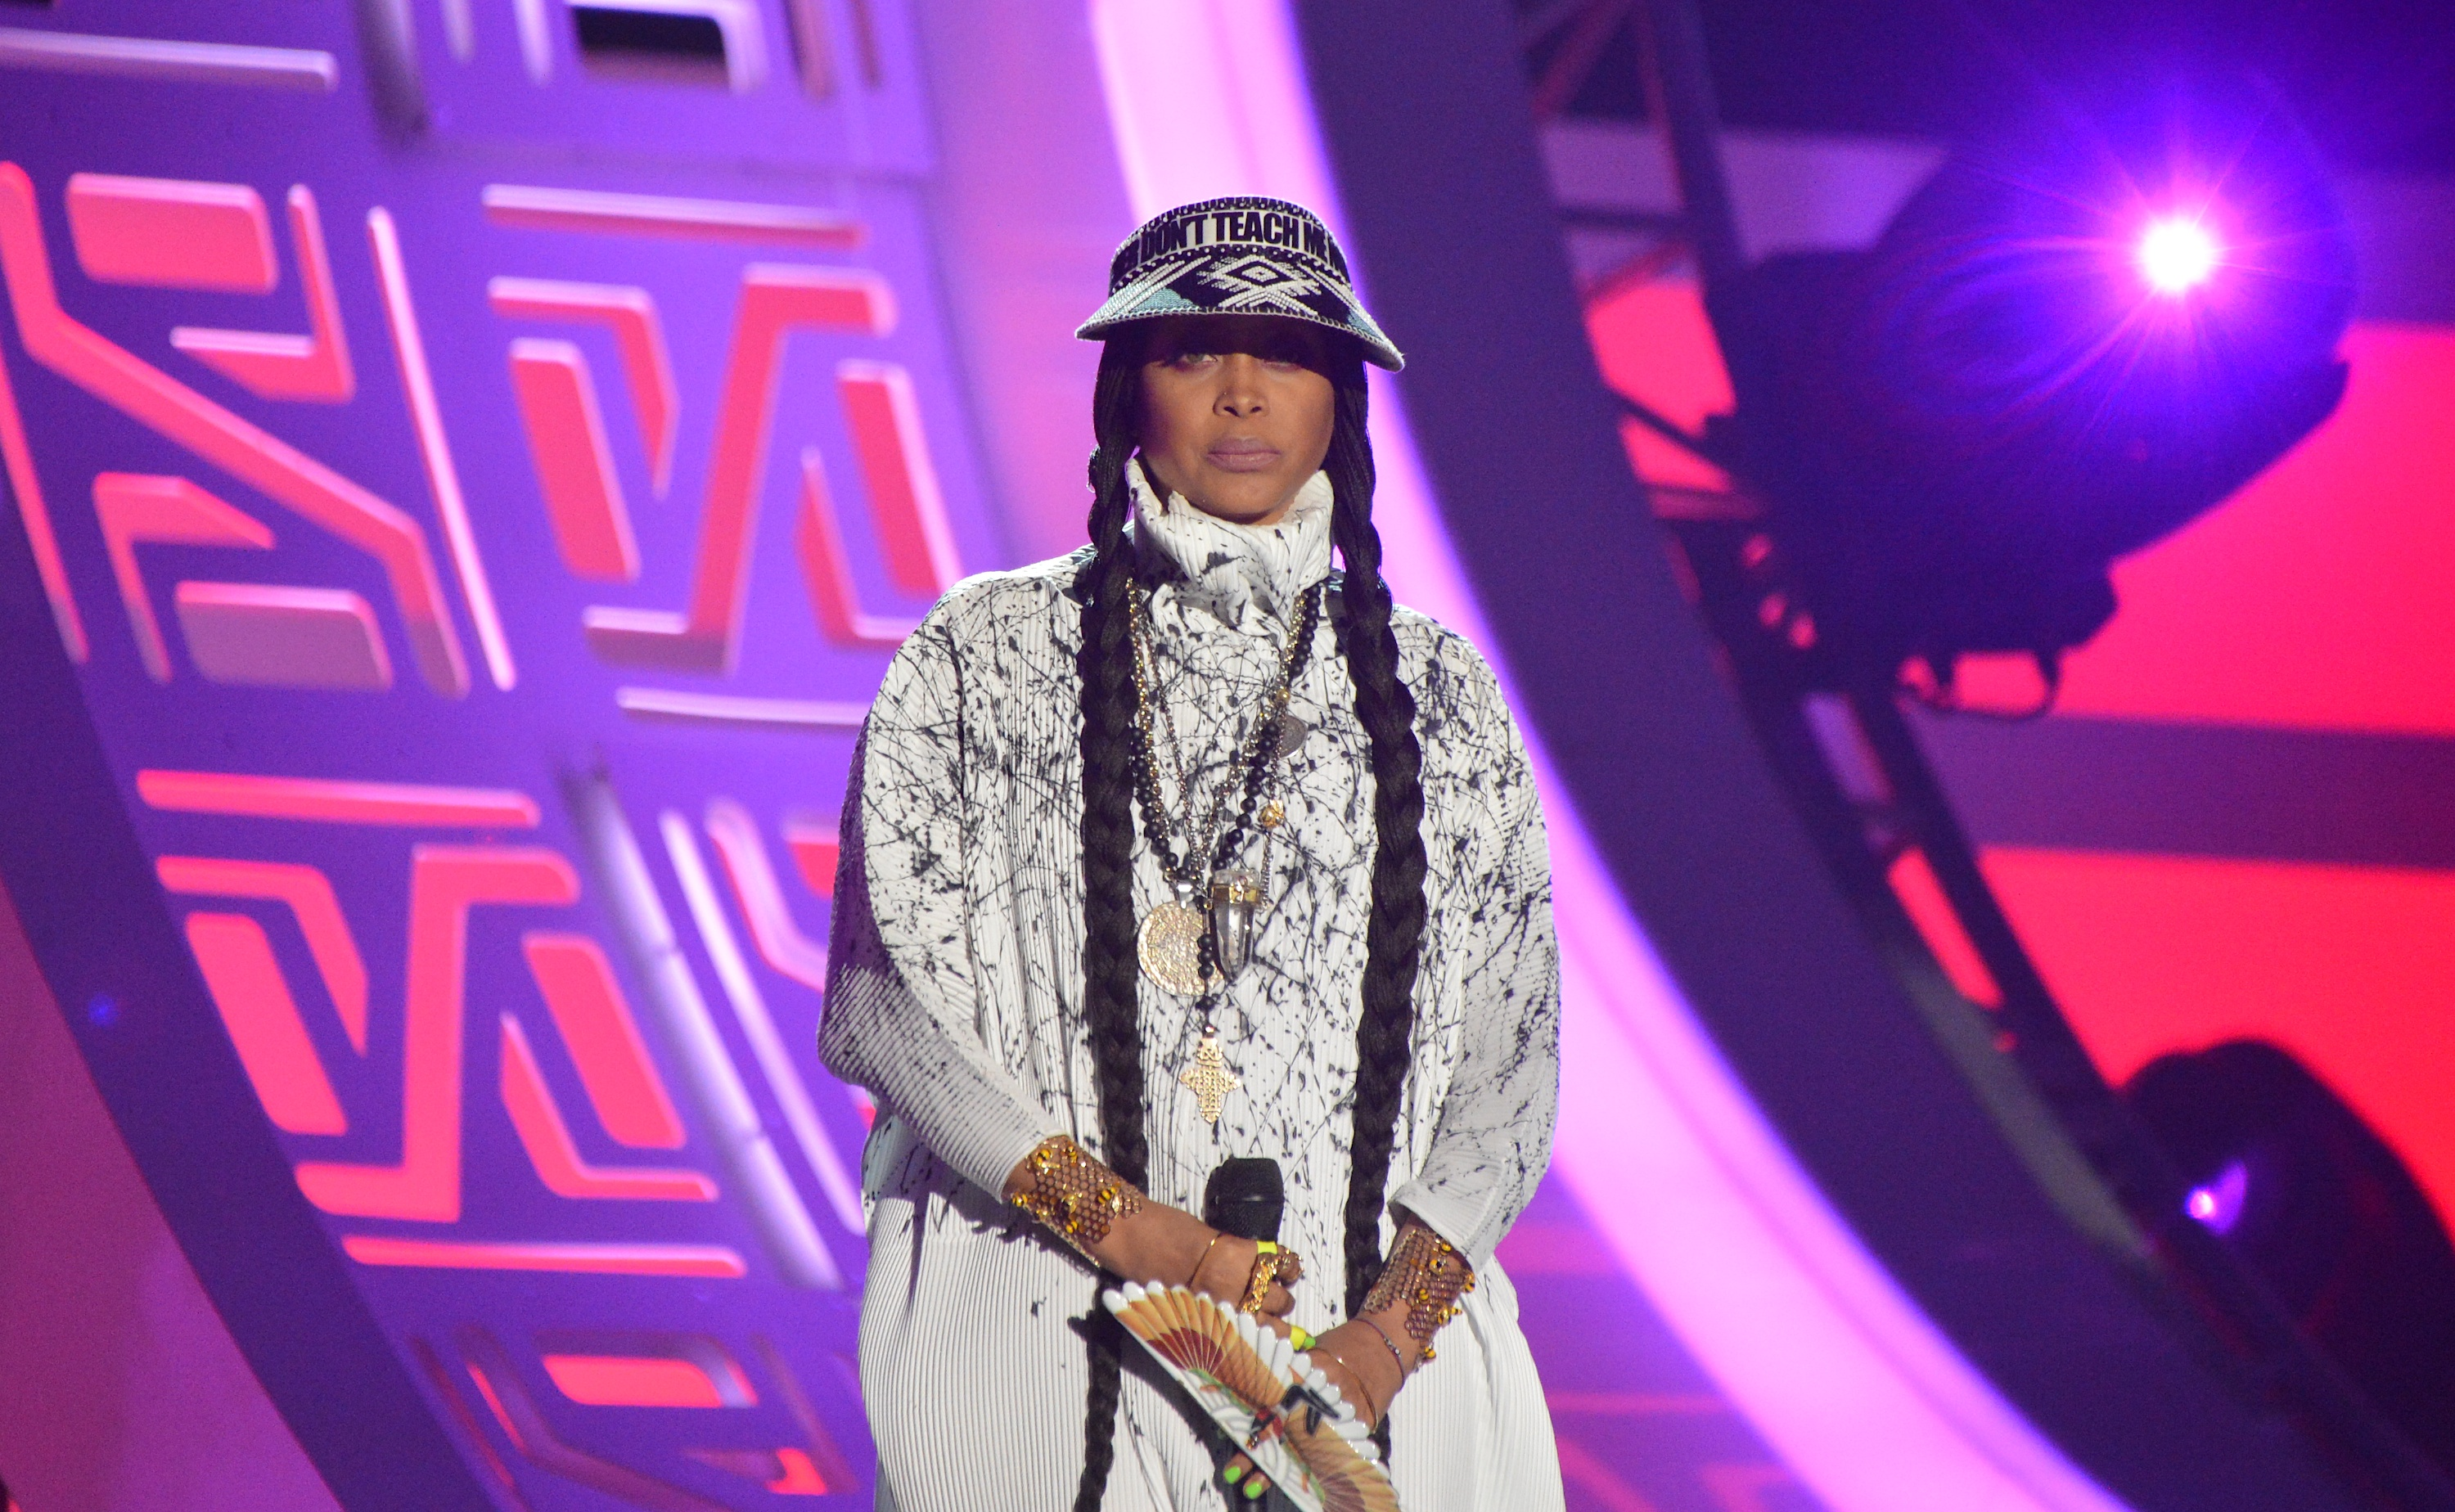 LAS VEGAS, NV - NOVEMBER 06:  Host Erykah Badu speaks onstage during the 2016 Soul Train Music Awards at the Orleans Arena on November 6, 2016 in Las Vegas, Nevada.  (Photo by Mindy Small/FilmMagic)